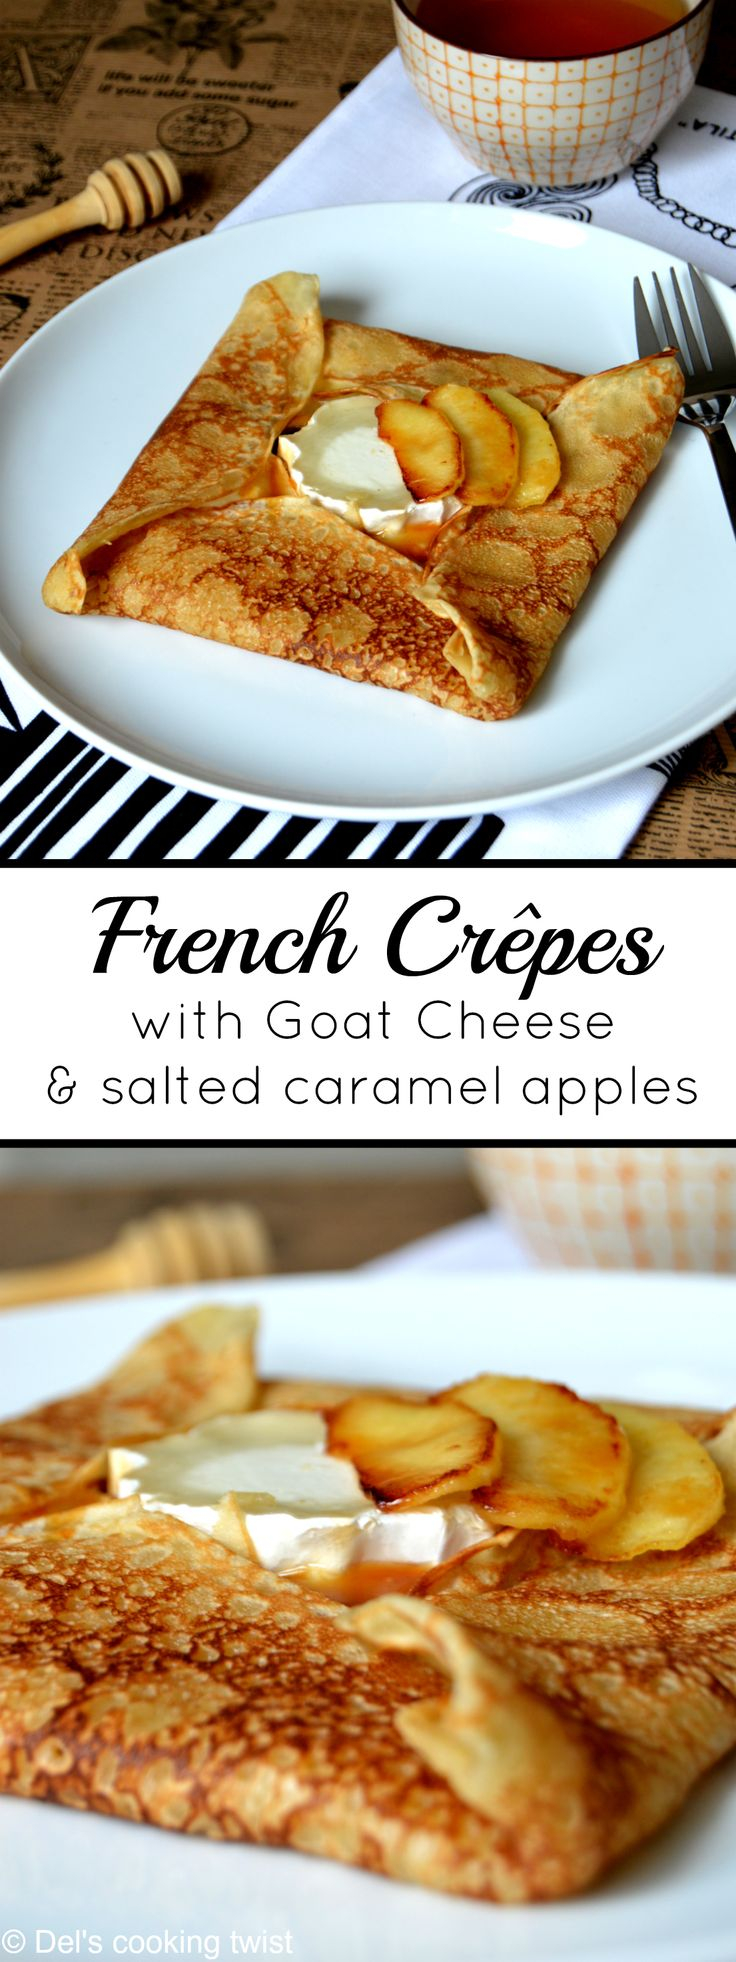 A delicious sweet and salty Brittany crepe to enjoy with a glass of cider! | Del's cooking twist